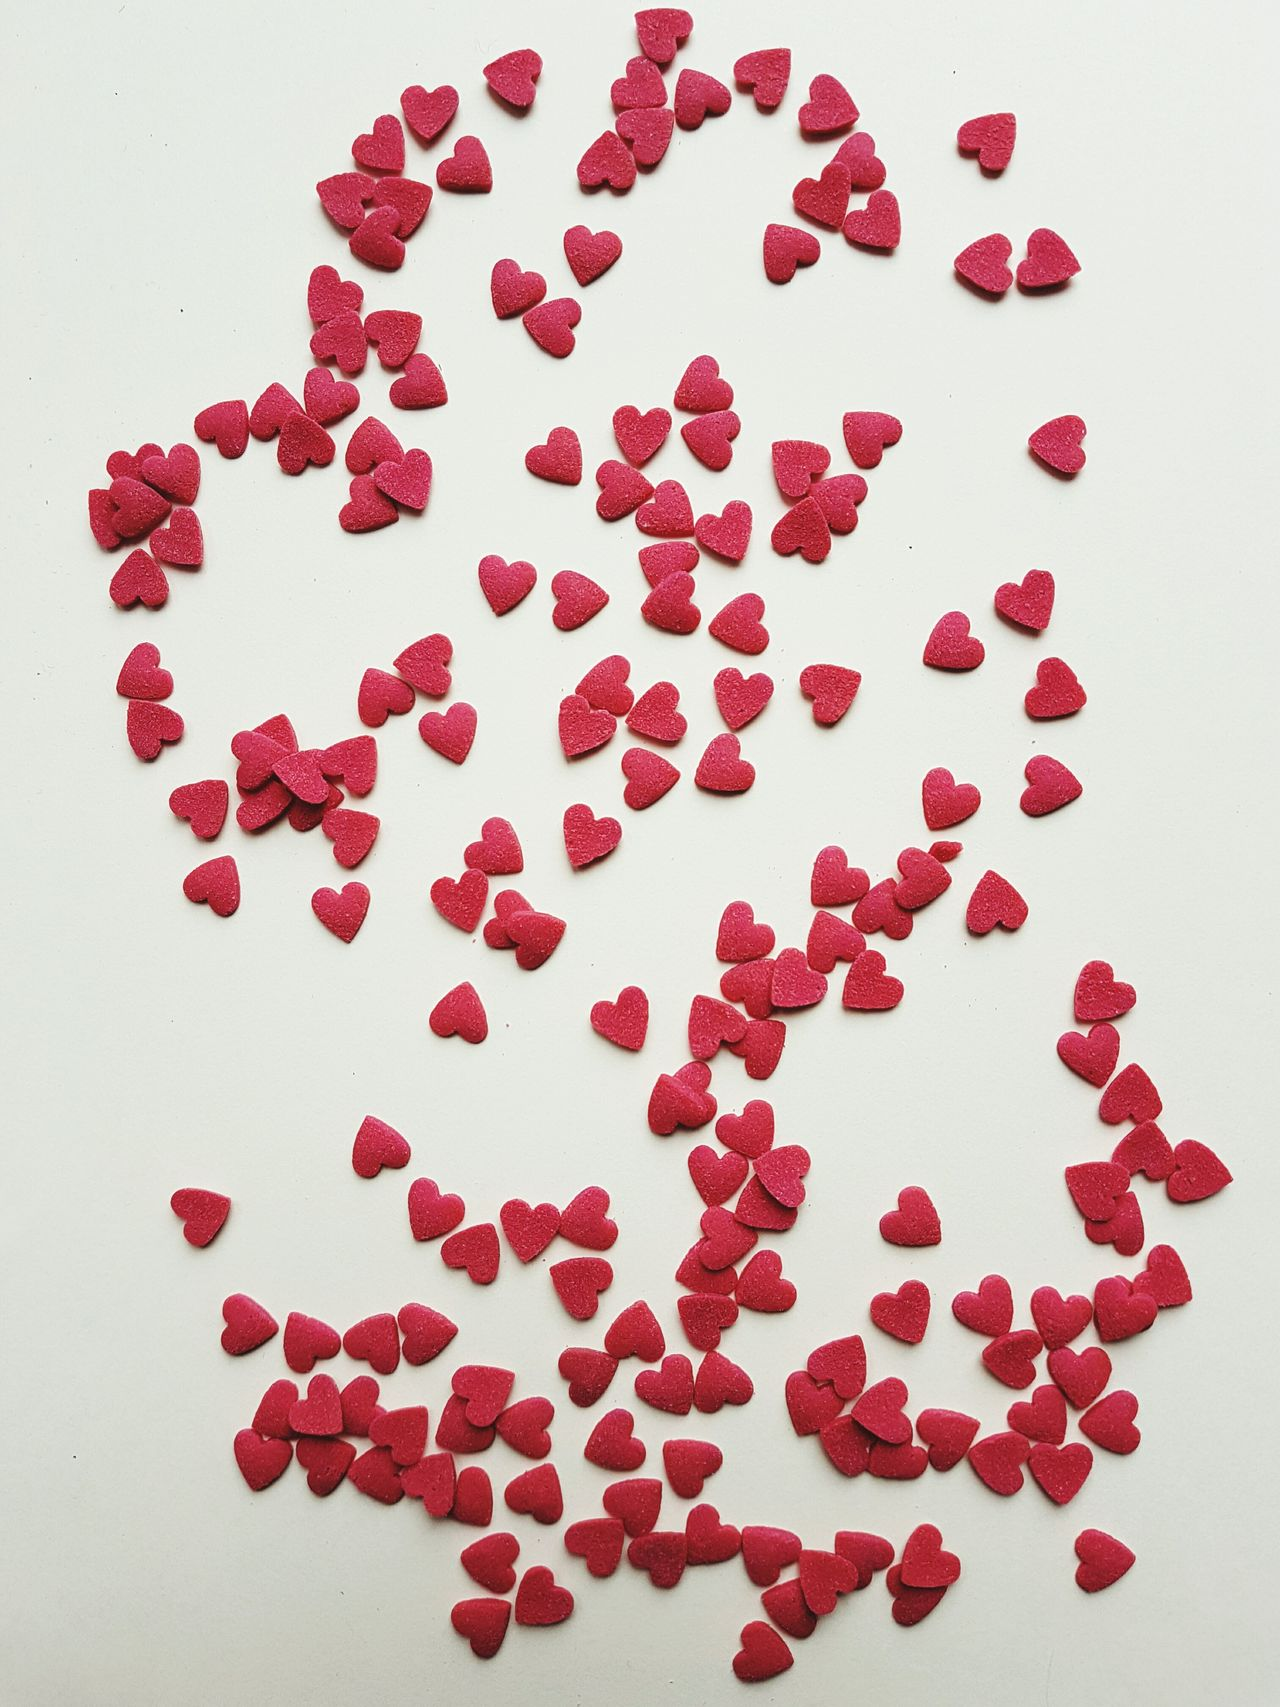 Hearts Love Romantic Heart Shape Red Hearts Variation White Background No People Indoors  Close-up Day